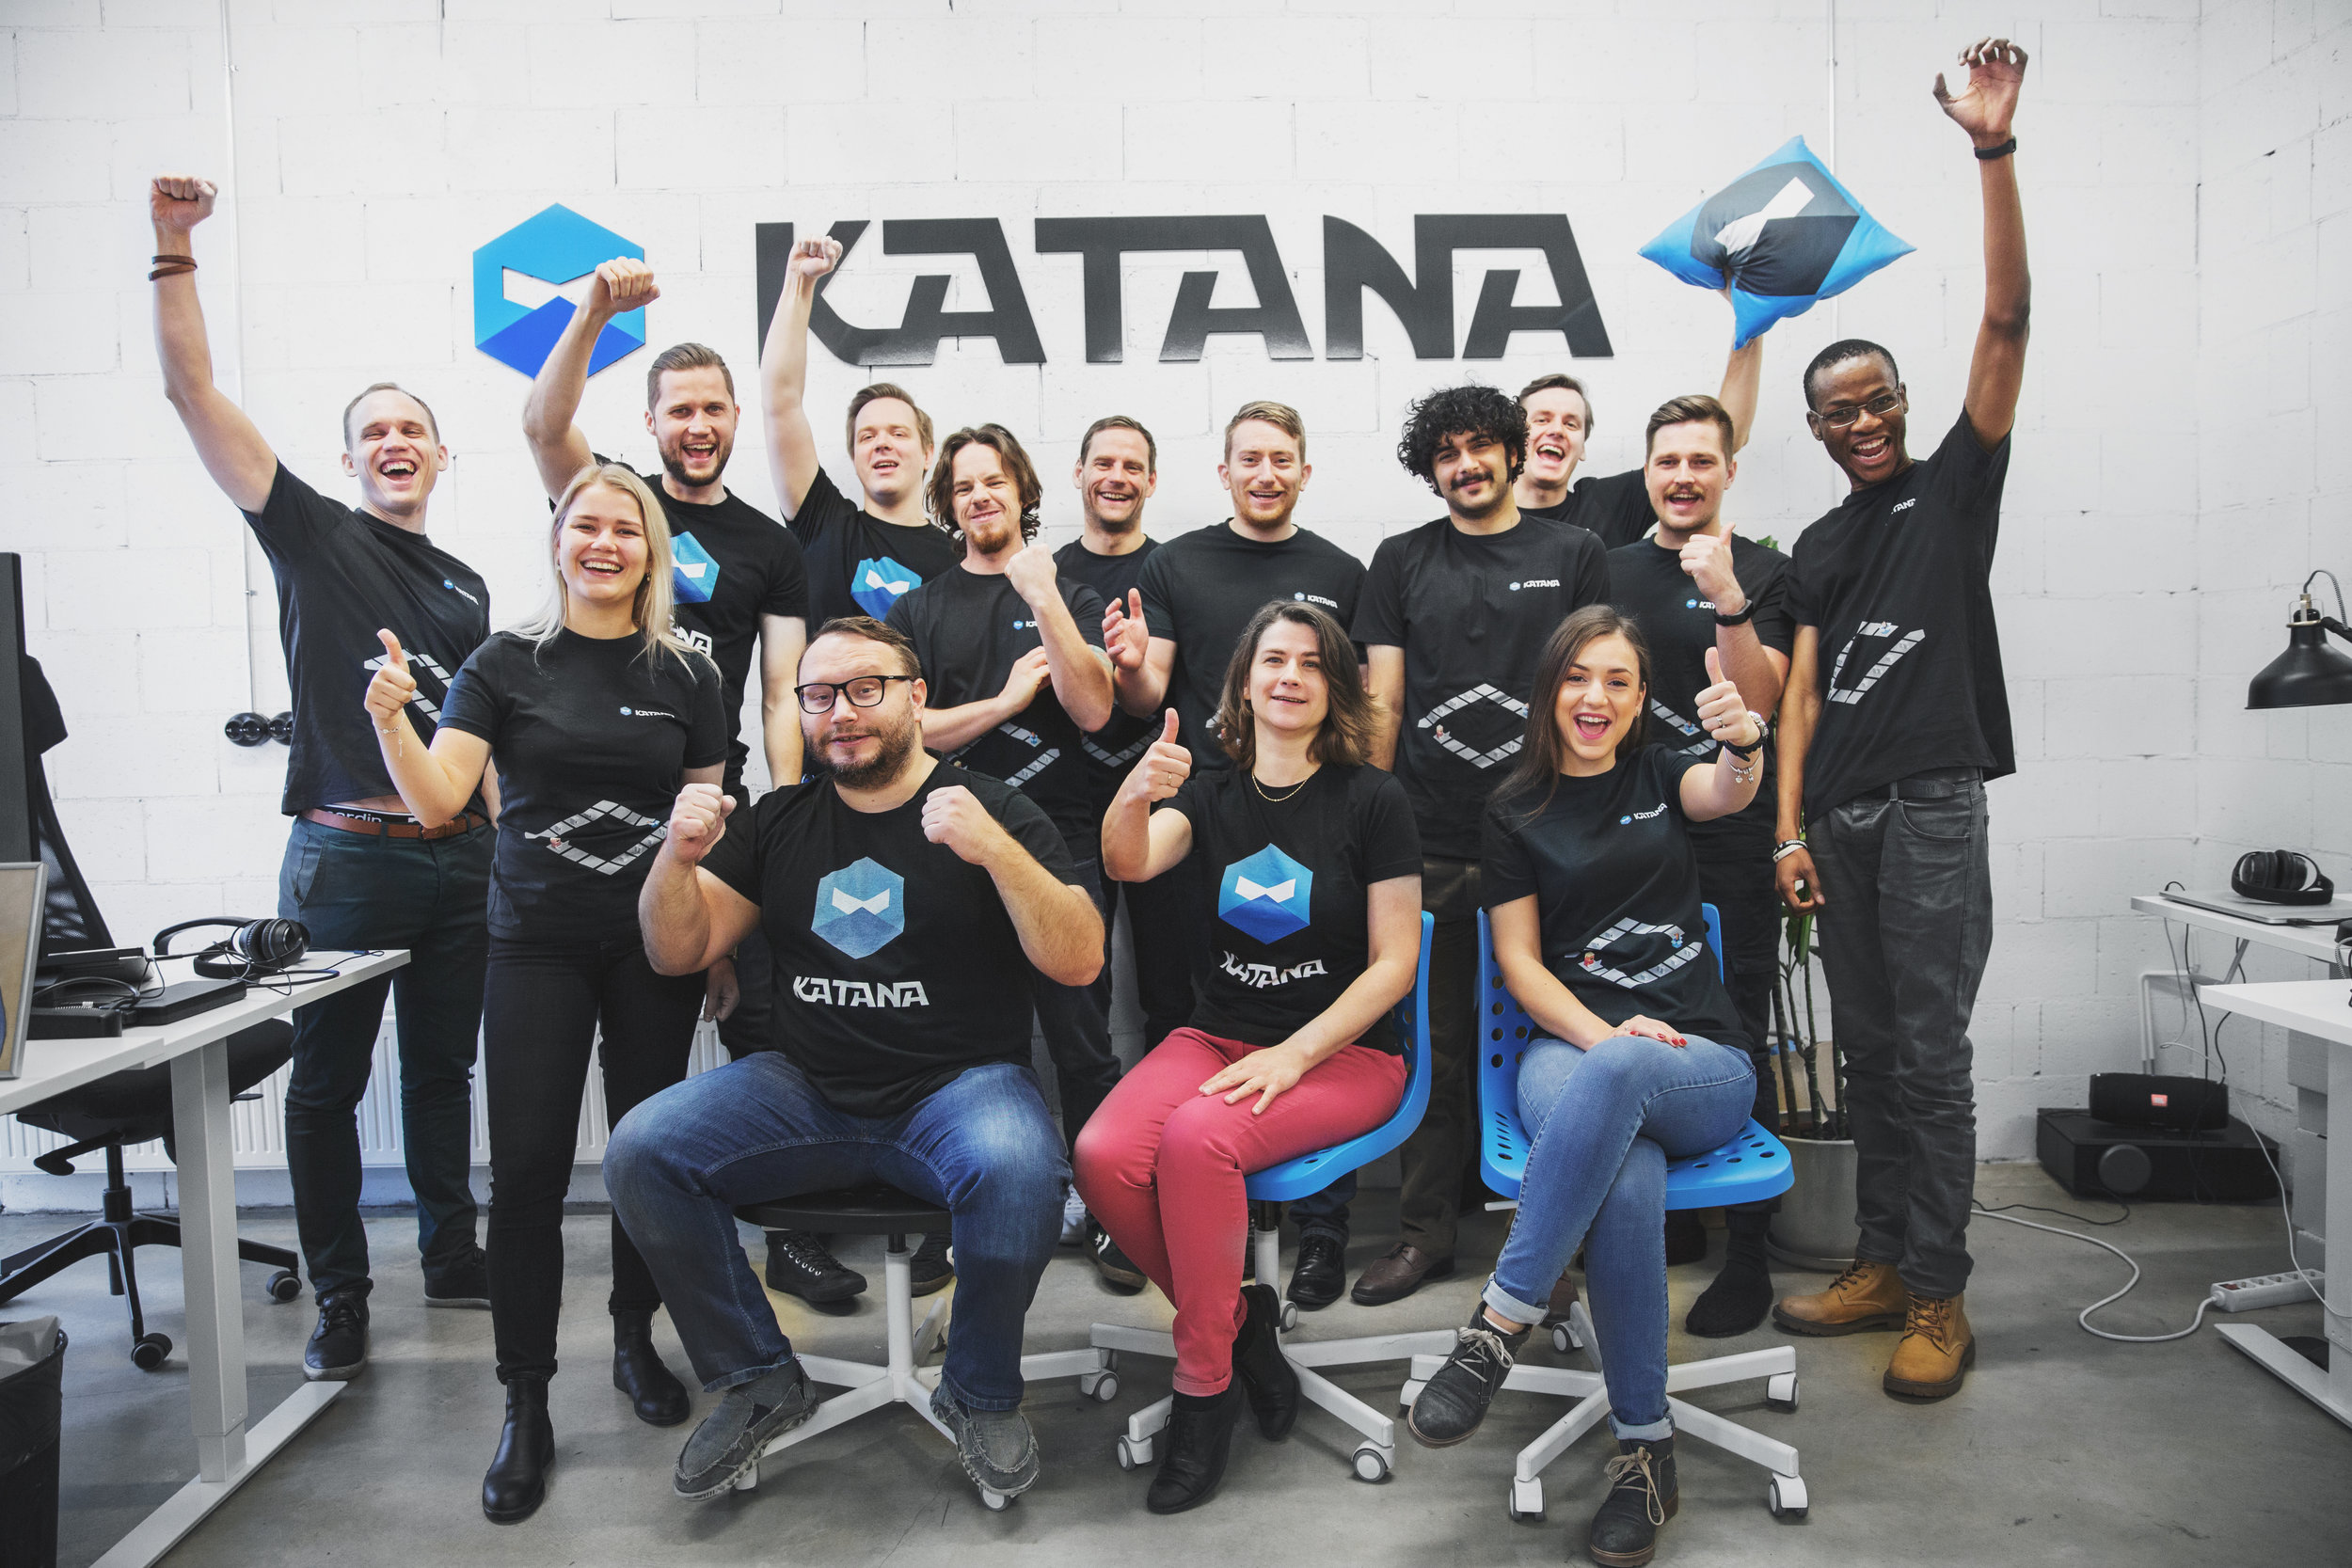 Katana team is made up of the finest, the creme de la creme. Aiming to create the best manufacturing software for small manufacturers and makers.